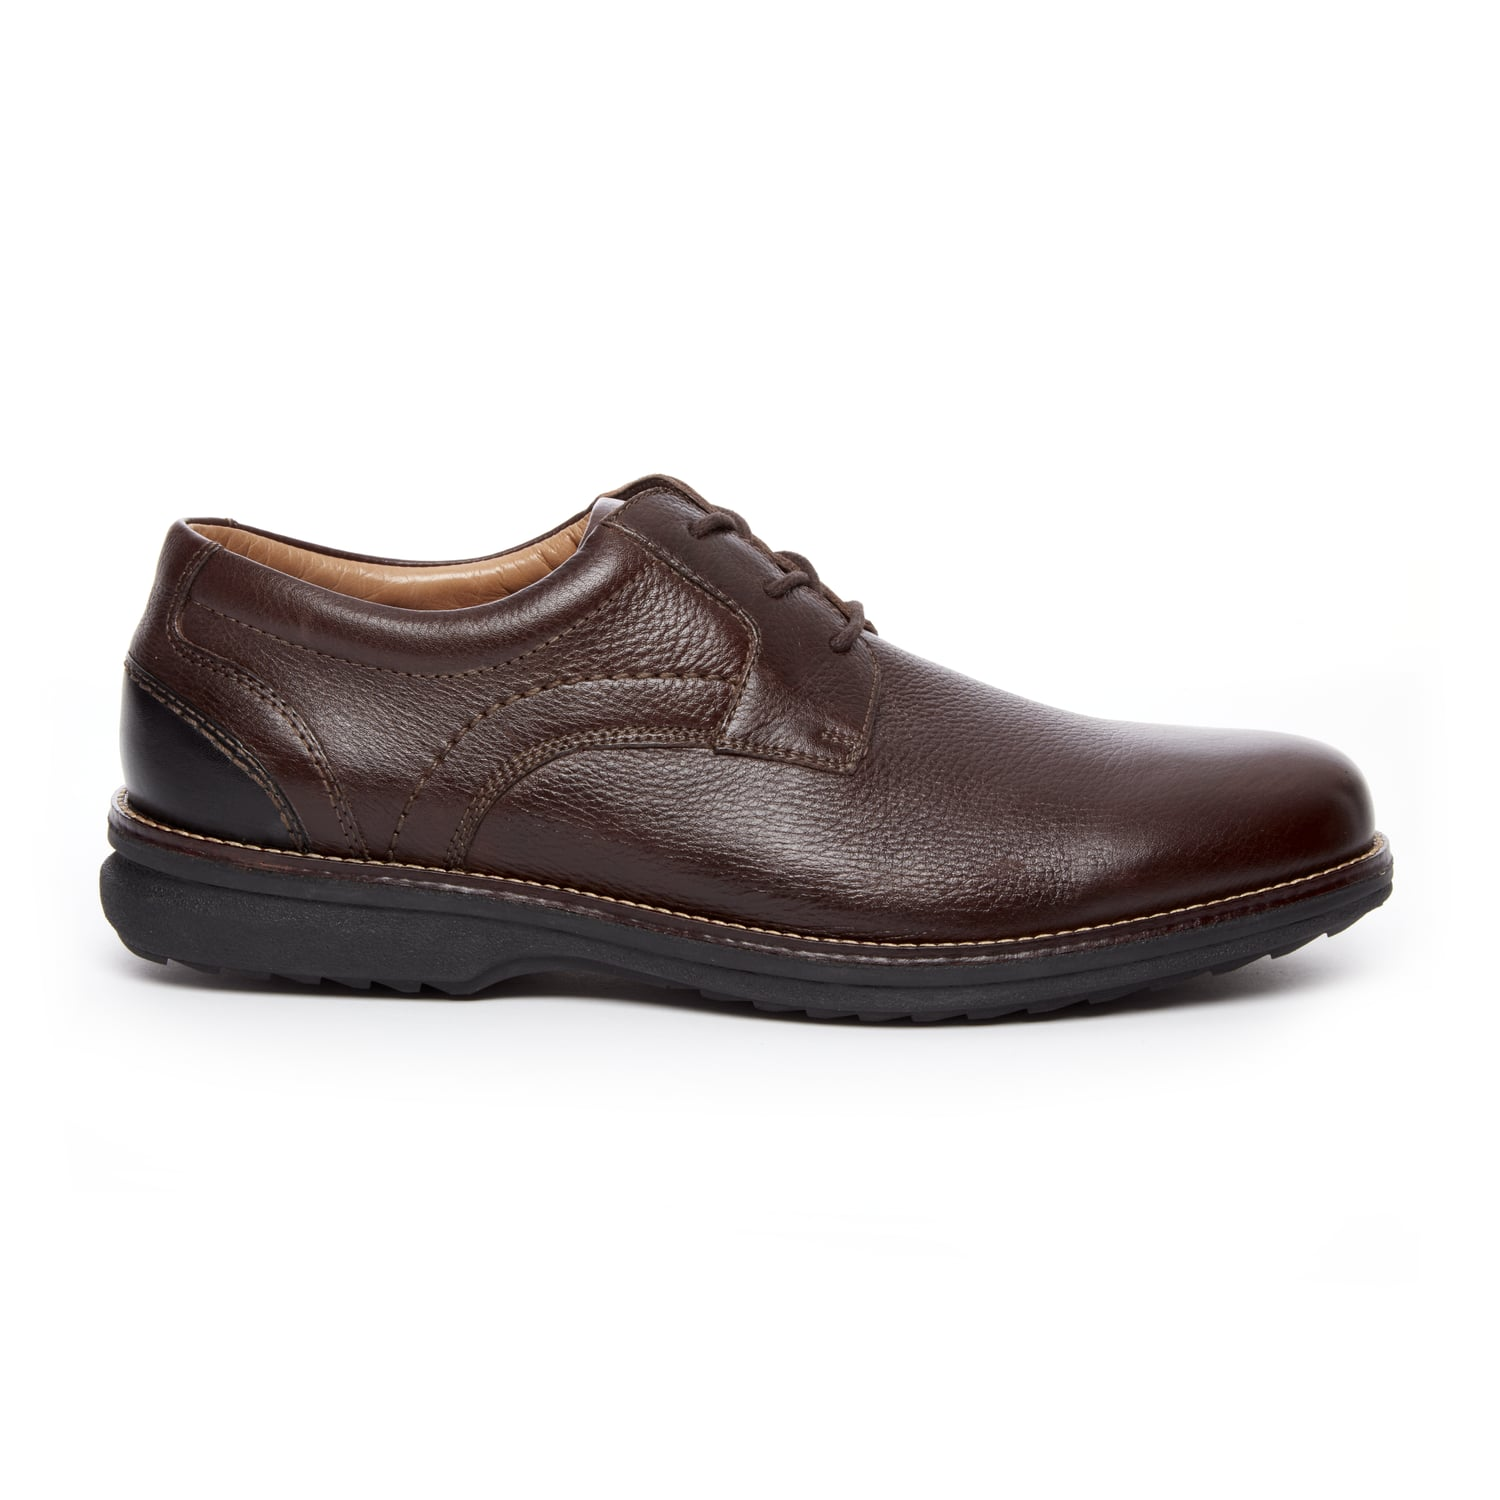 Rockport Private Sale: Extra 30% Off Men's and Women's Shoes: Men's Premium Class Plain Toe Oxford $41.99, Women's Seven to 7 High Plain Pump $48.99 & More + Free Shipping